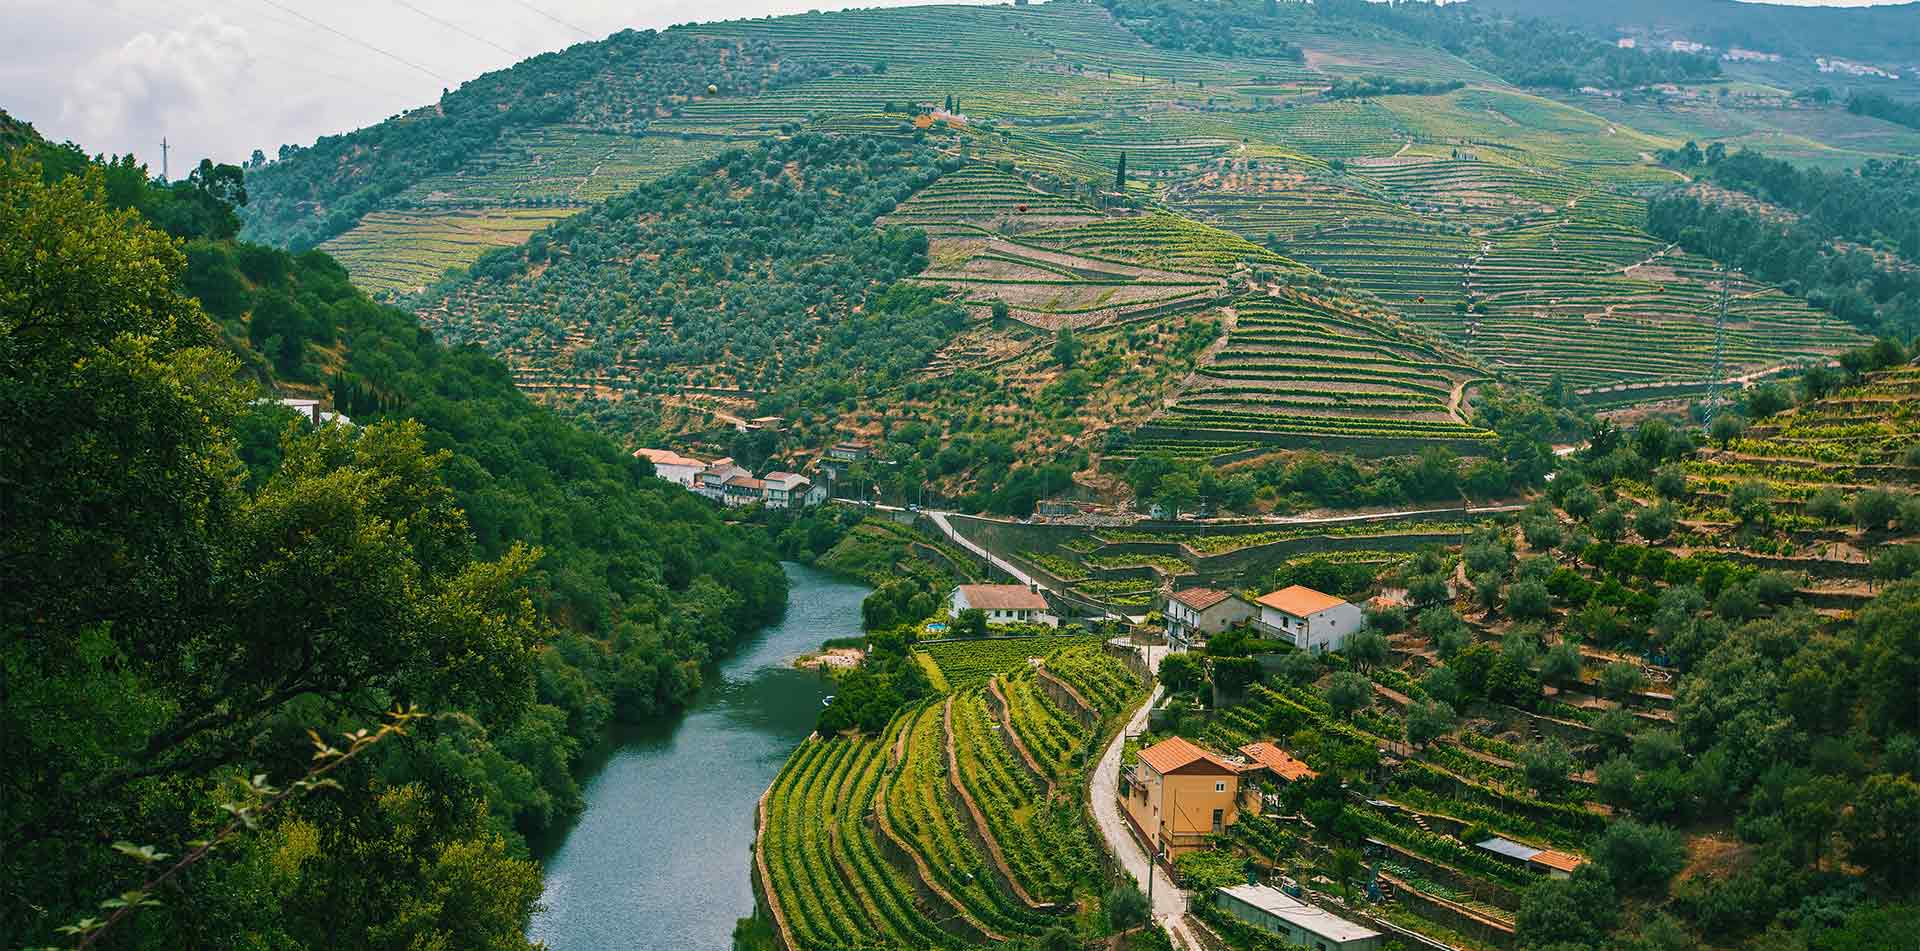 Europe Portugal Douro Valley aerial view of river and hillside vineyards - luxury vacation destinations